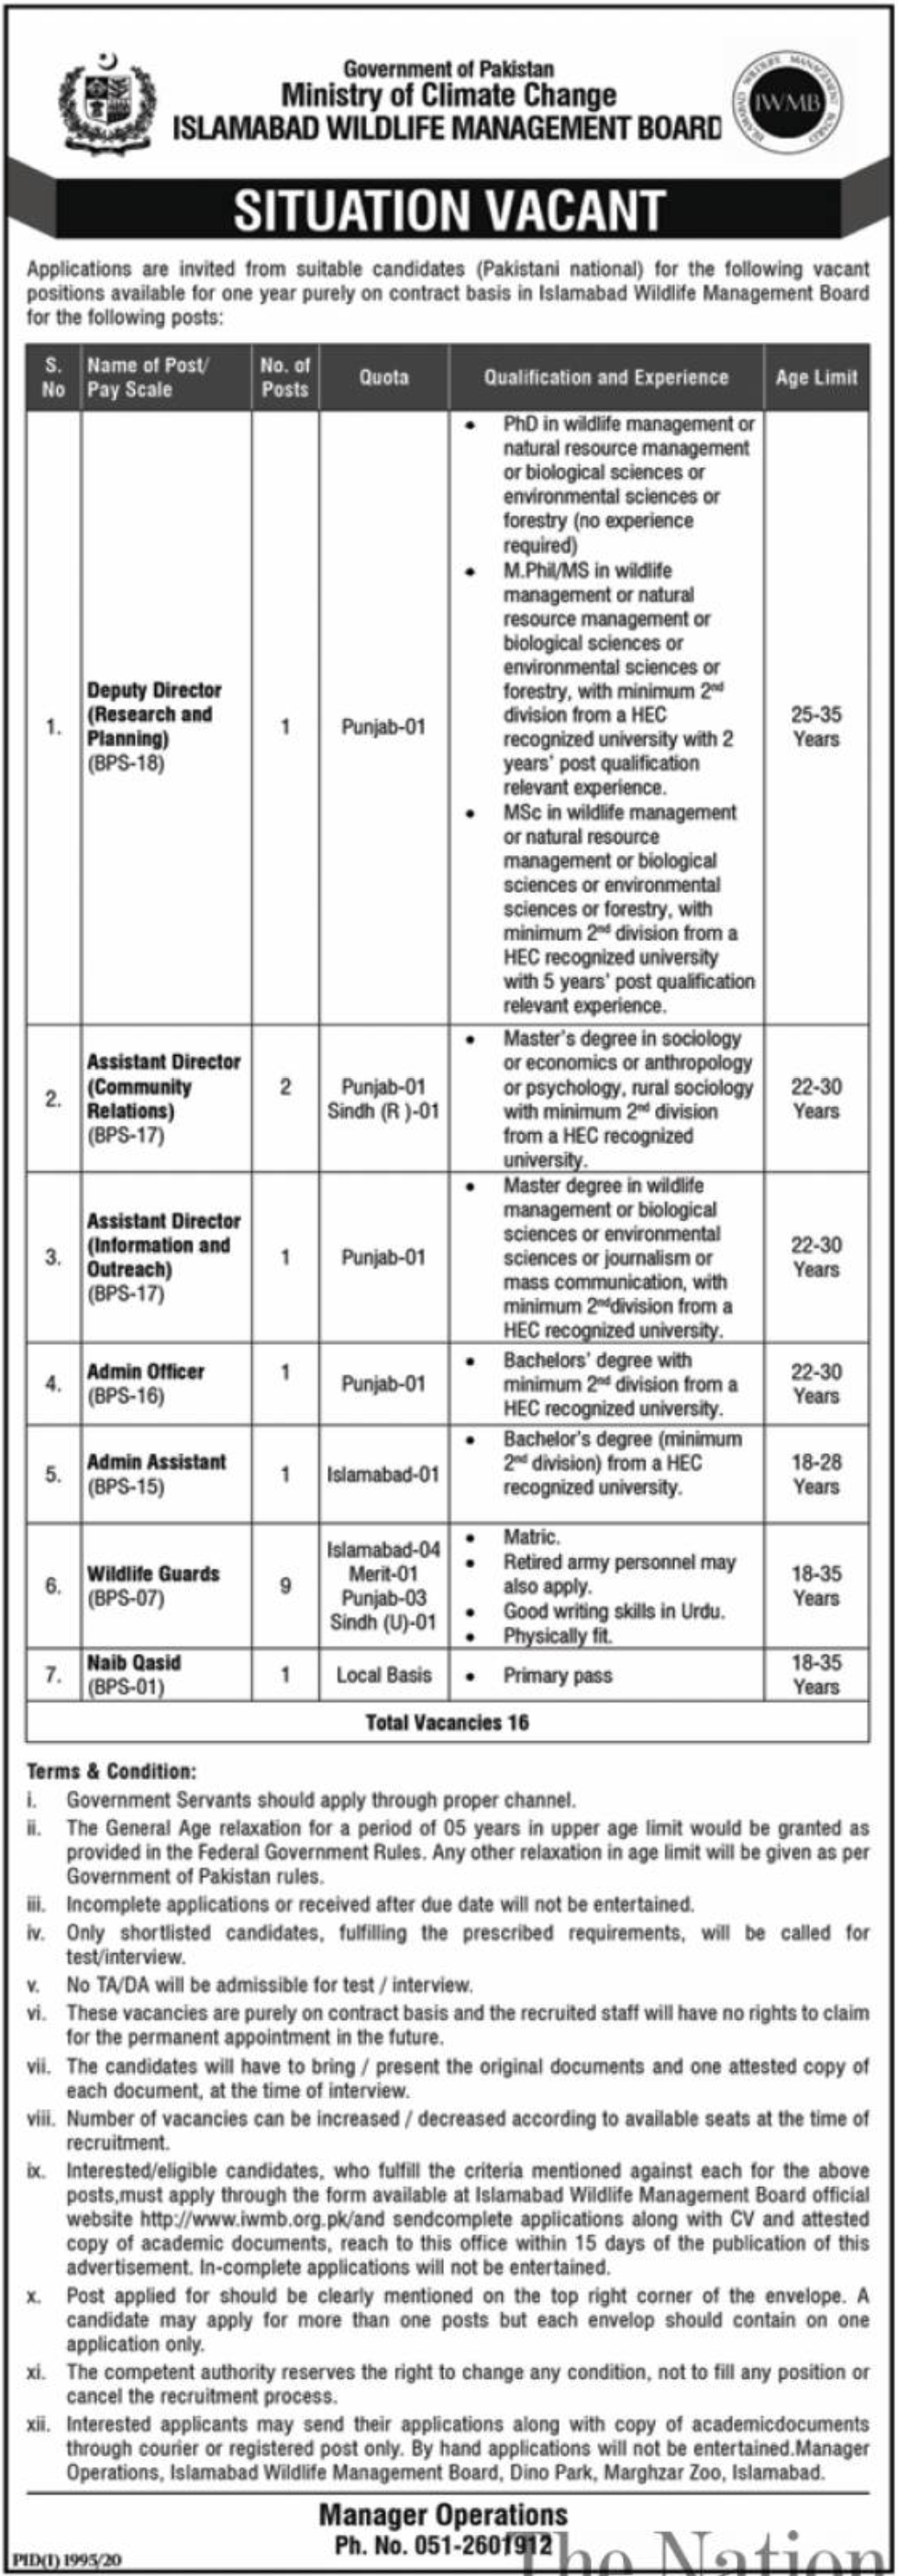 Government of Pakistan Ministry of Climate Change Jobs October 2020